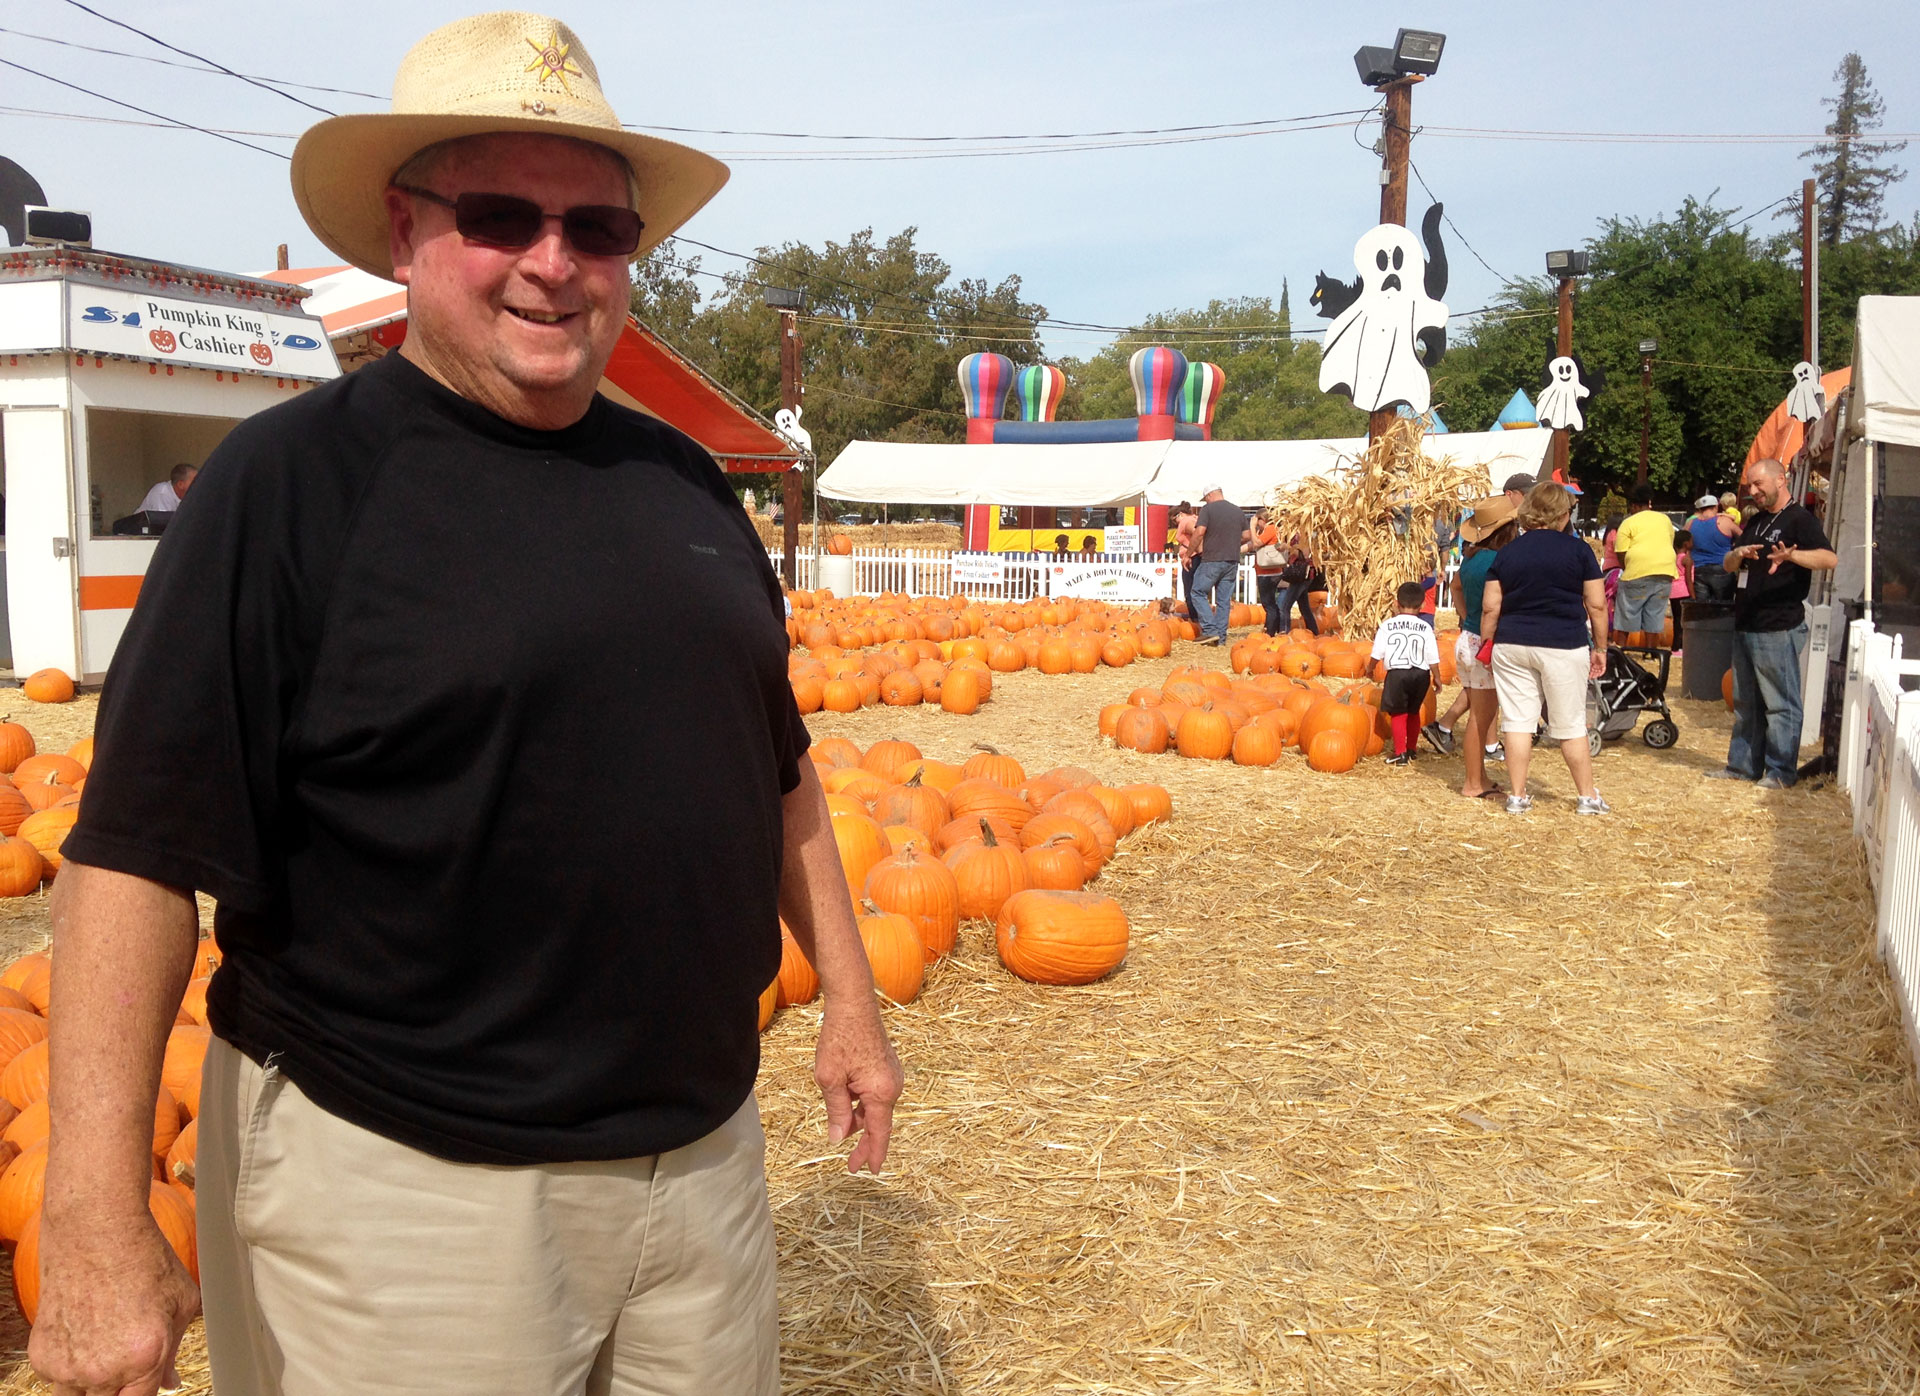 Wayne Martin stands in his Pumpkin King Pumpkin Patch in Fresno.